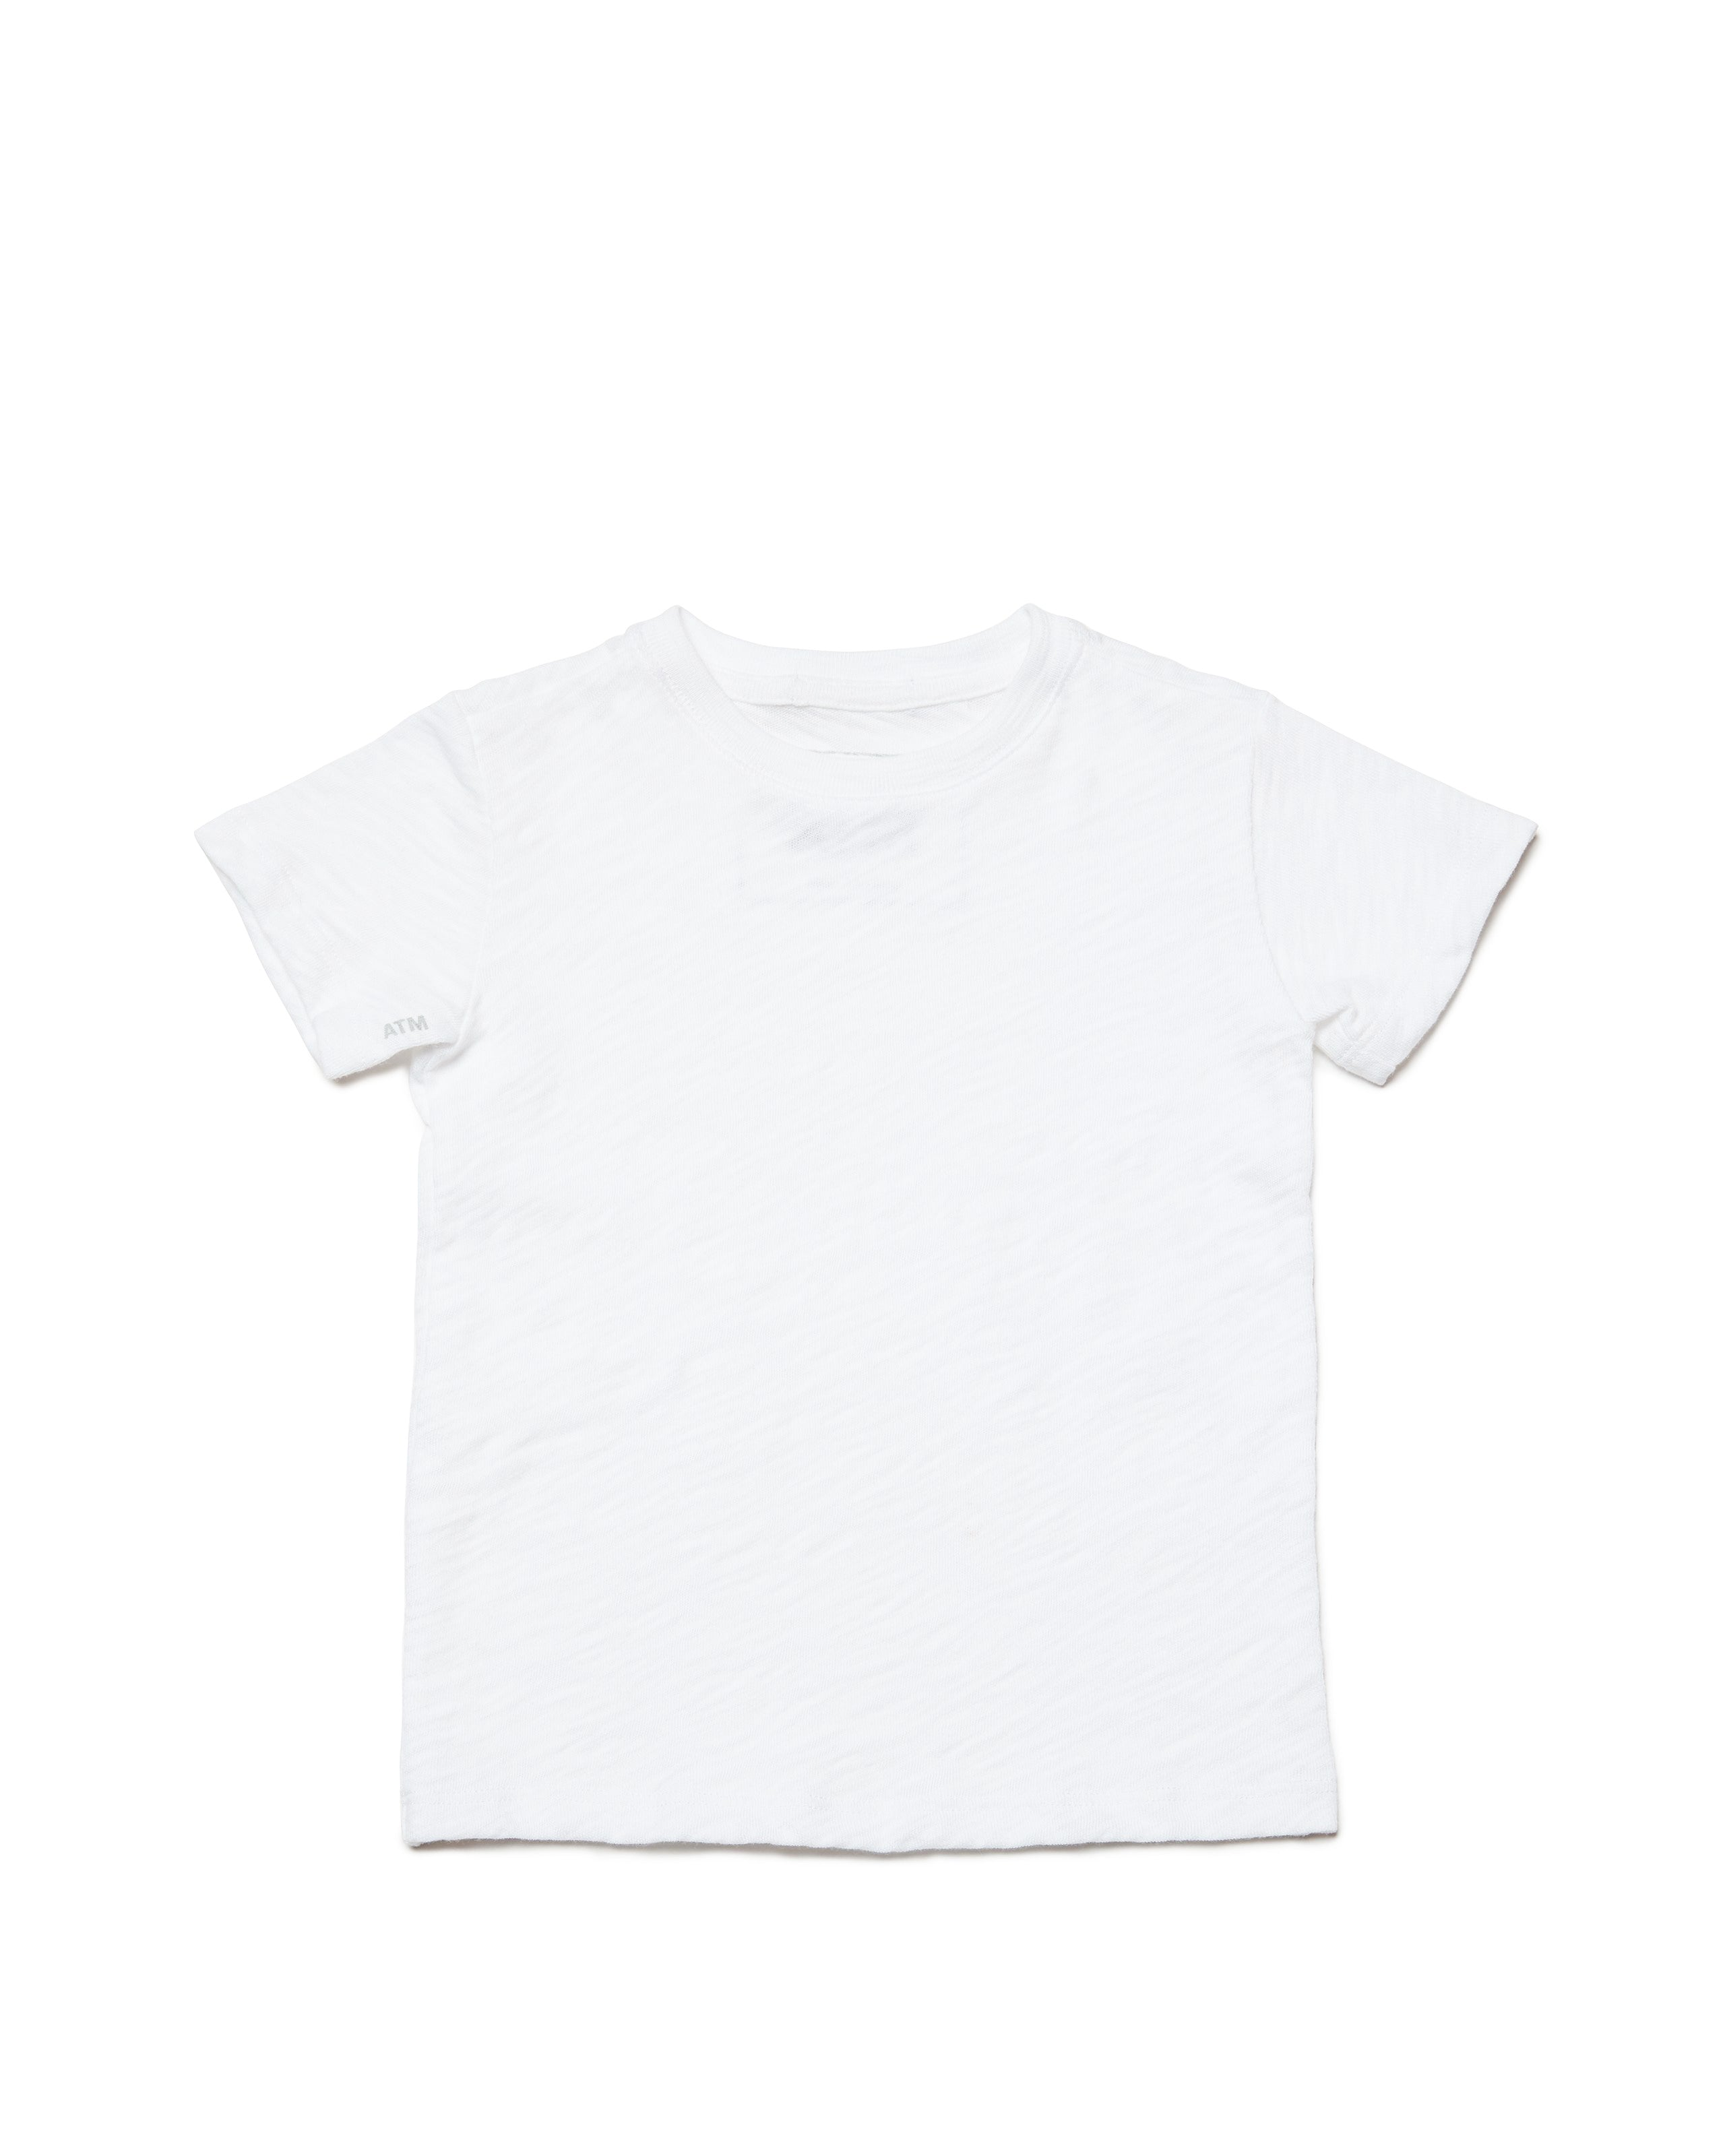 White Kids Slub Jersey Short Sleeve Tee - Kid's Cotton Short Sleeve Tee by ATM Anthony Thomas Melillo